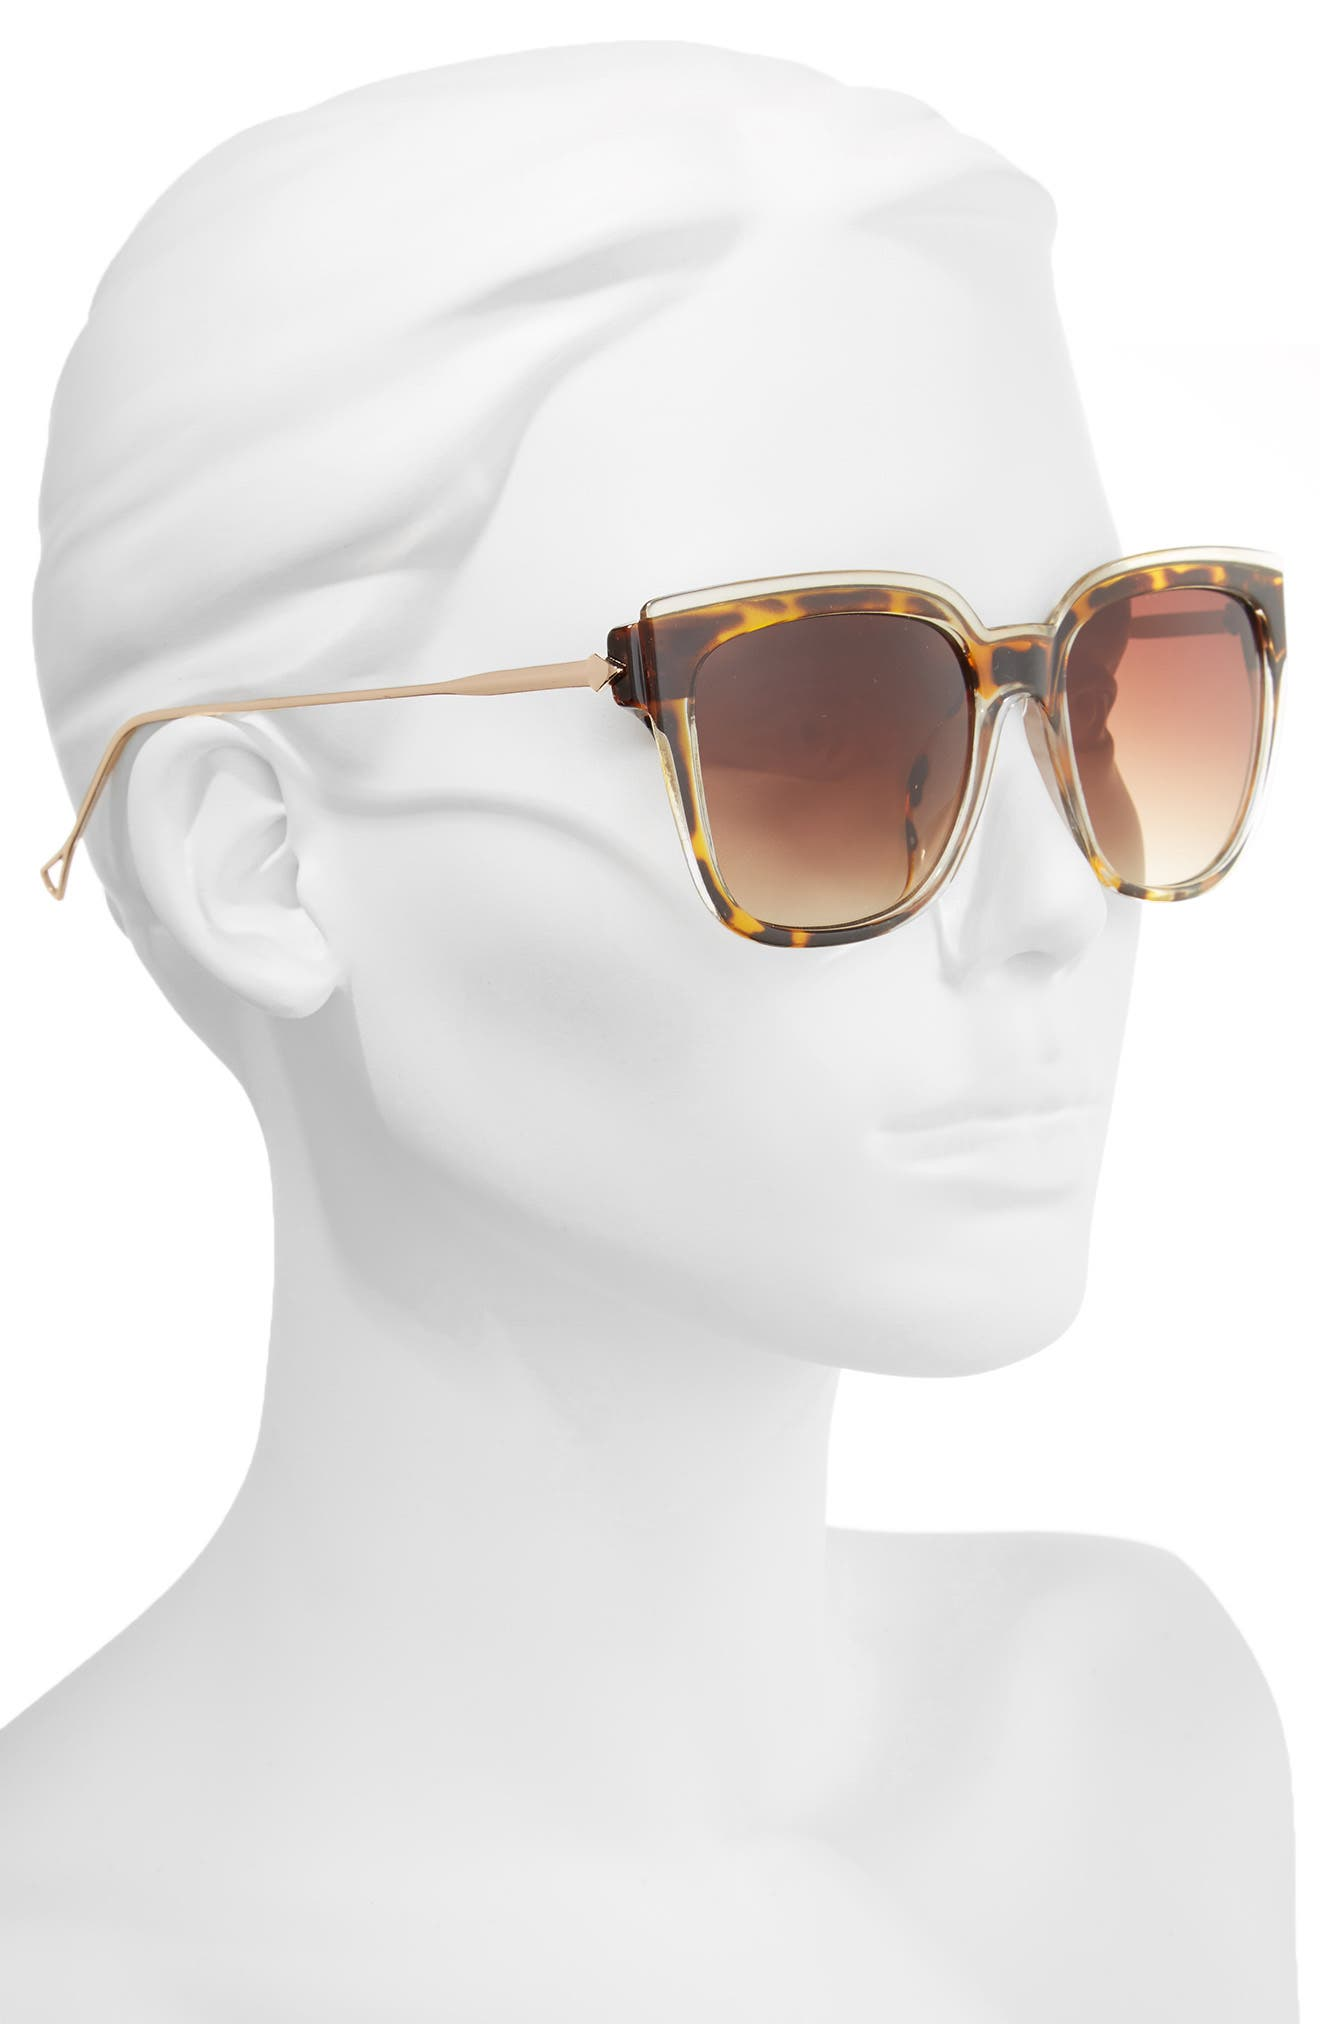 65mm Oversize Square Sunglasses,                             Alternate thumbnail 2, color,                             200